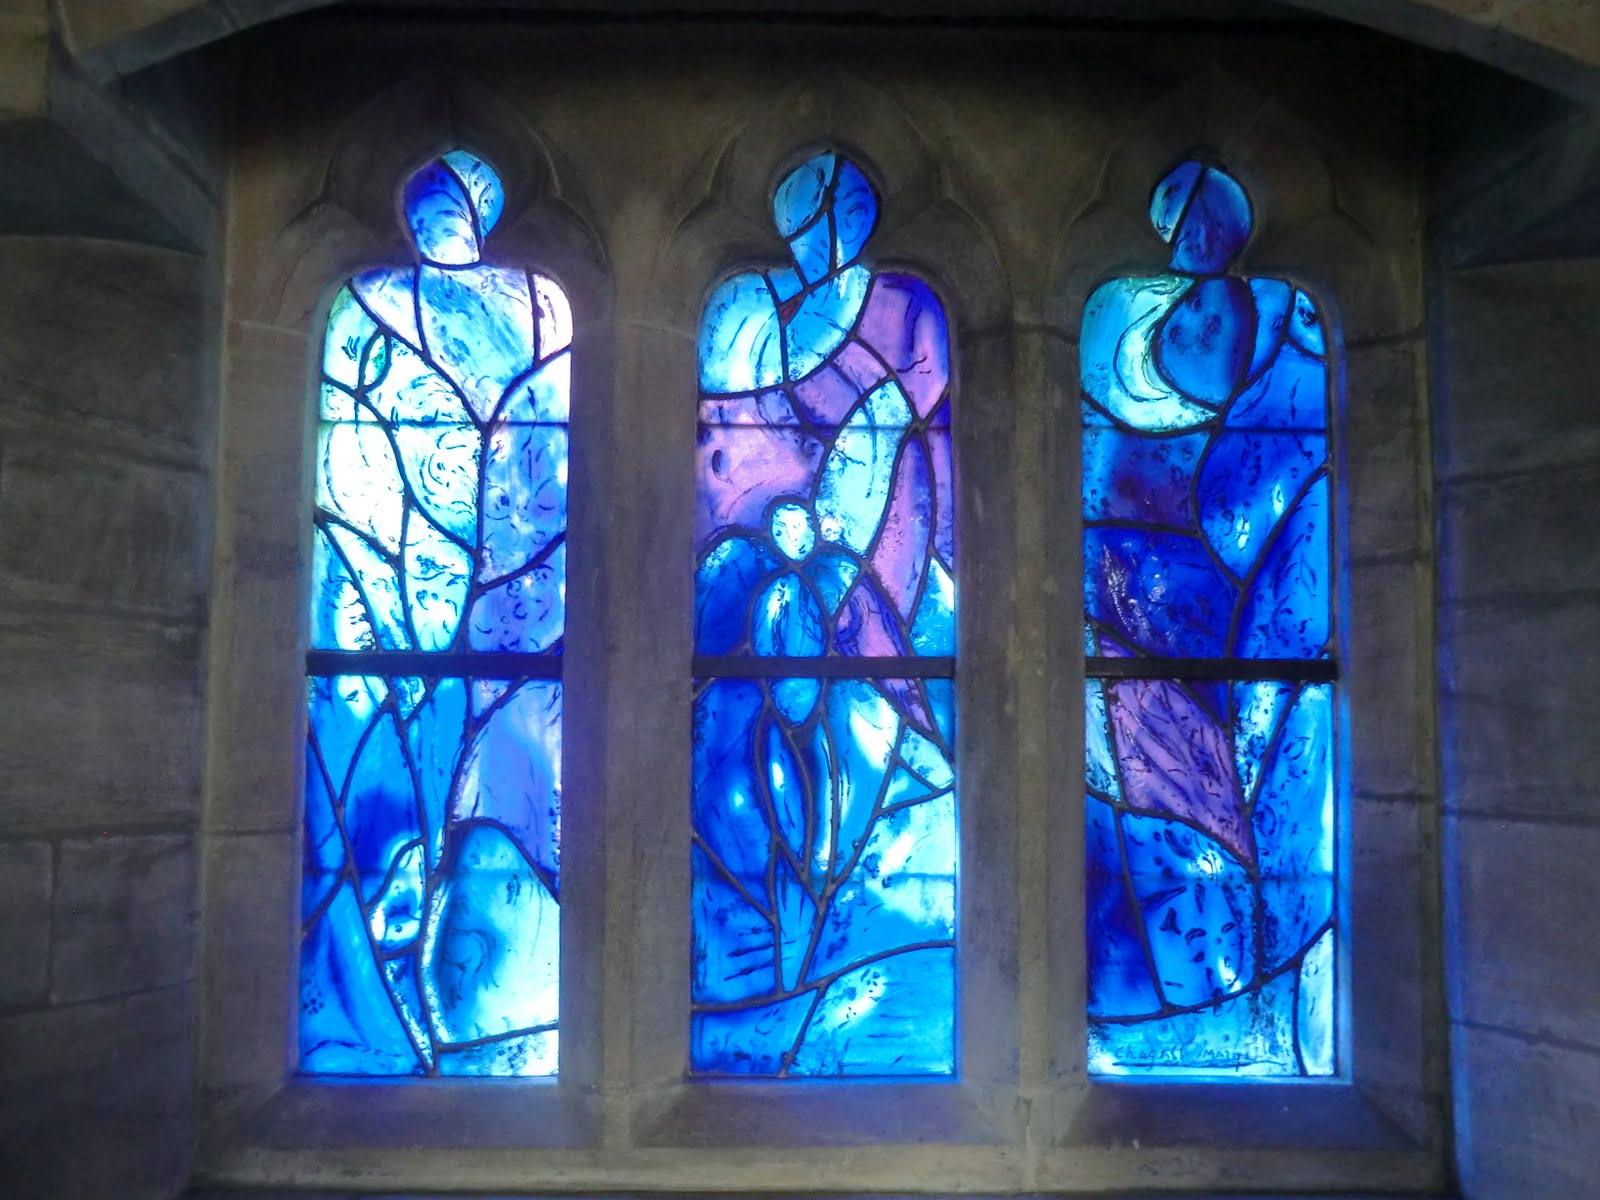 CIMG1561 Chagall window #3, All Saints church